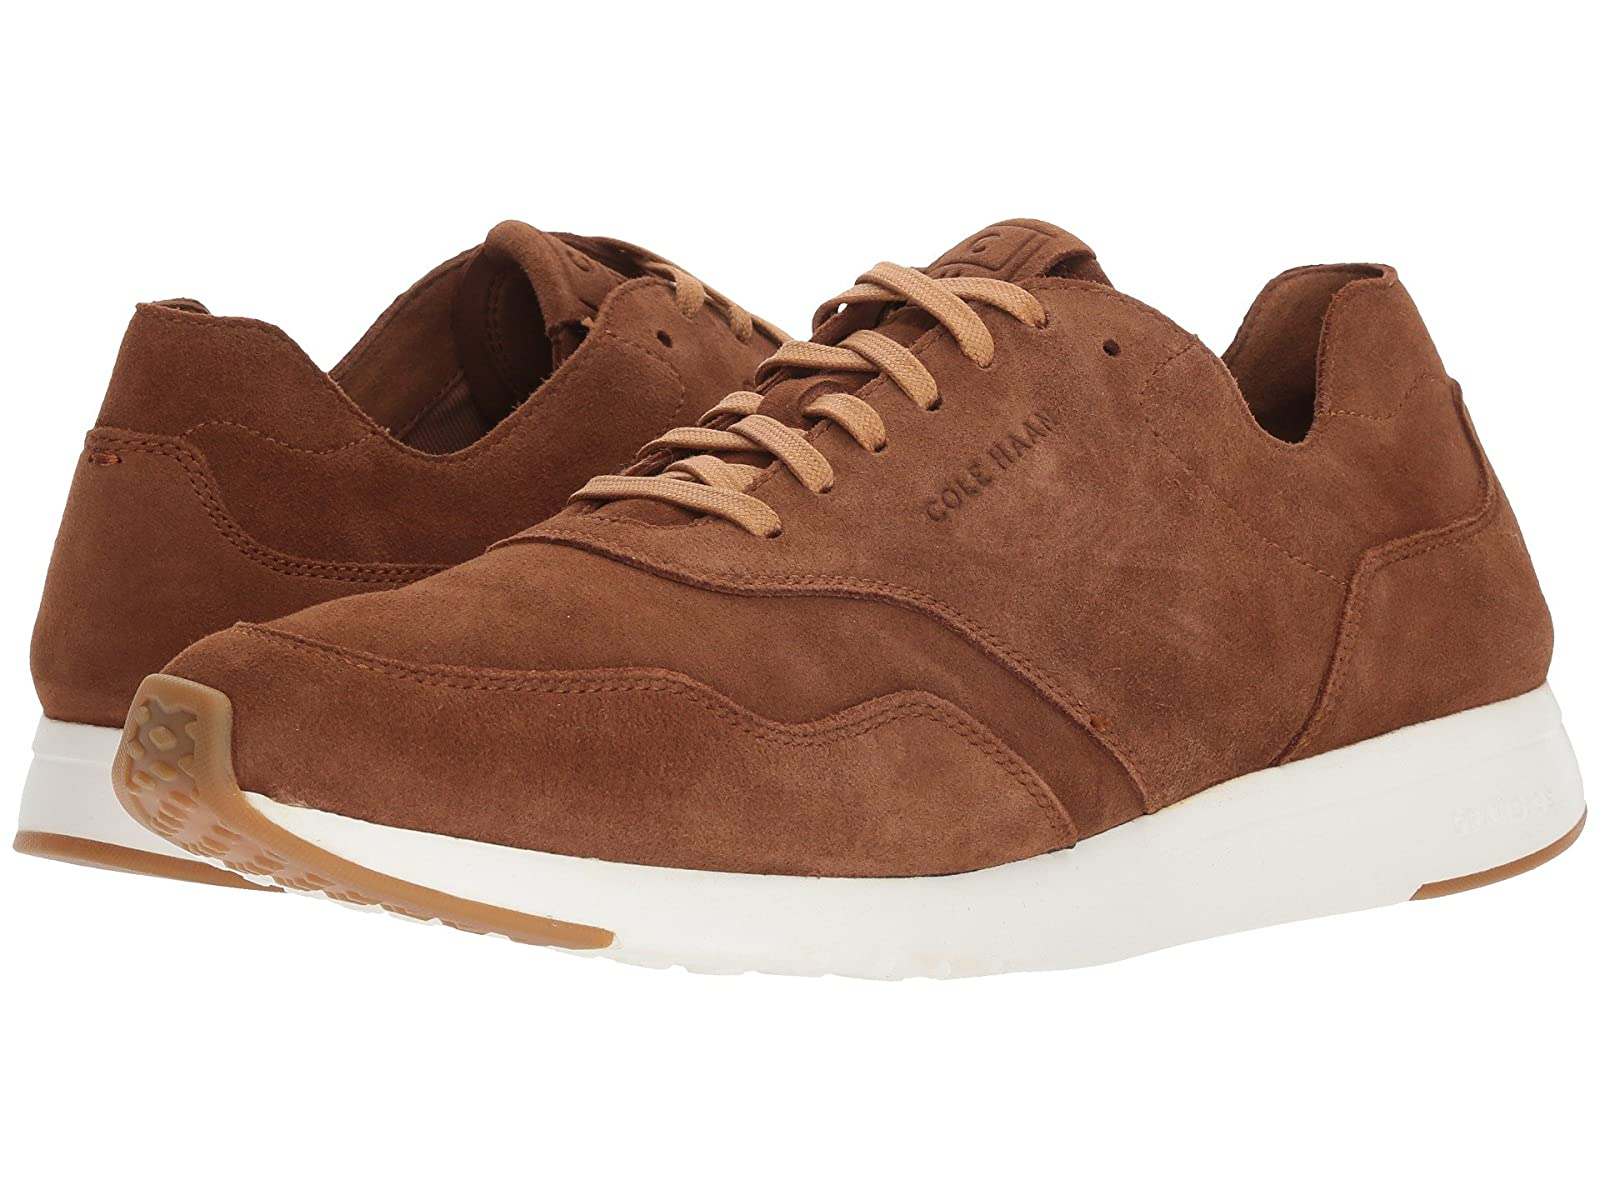 Cole Haan Grandpro Deconstructed RunnerCheap and distinctive eye-catching shoes